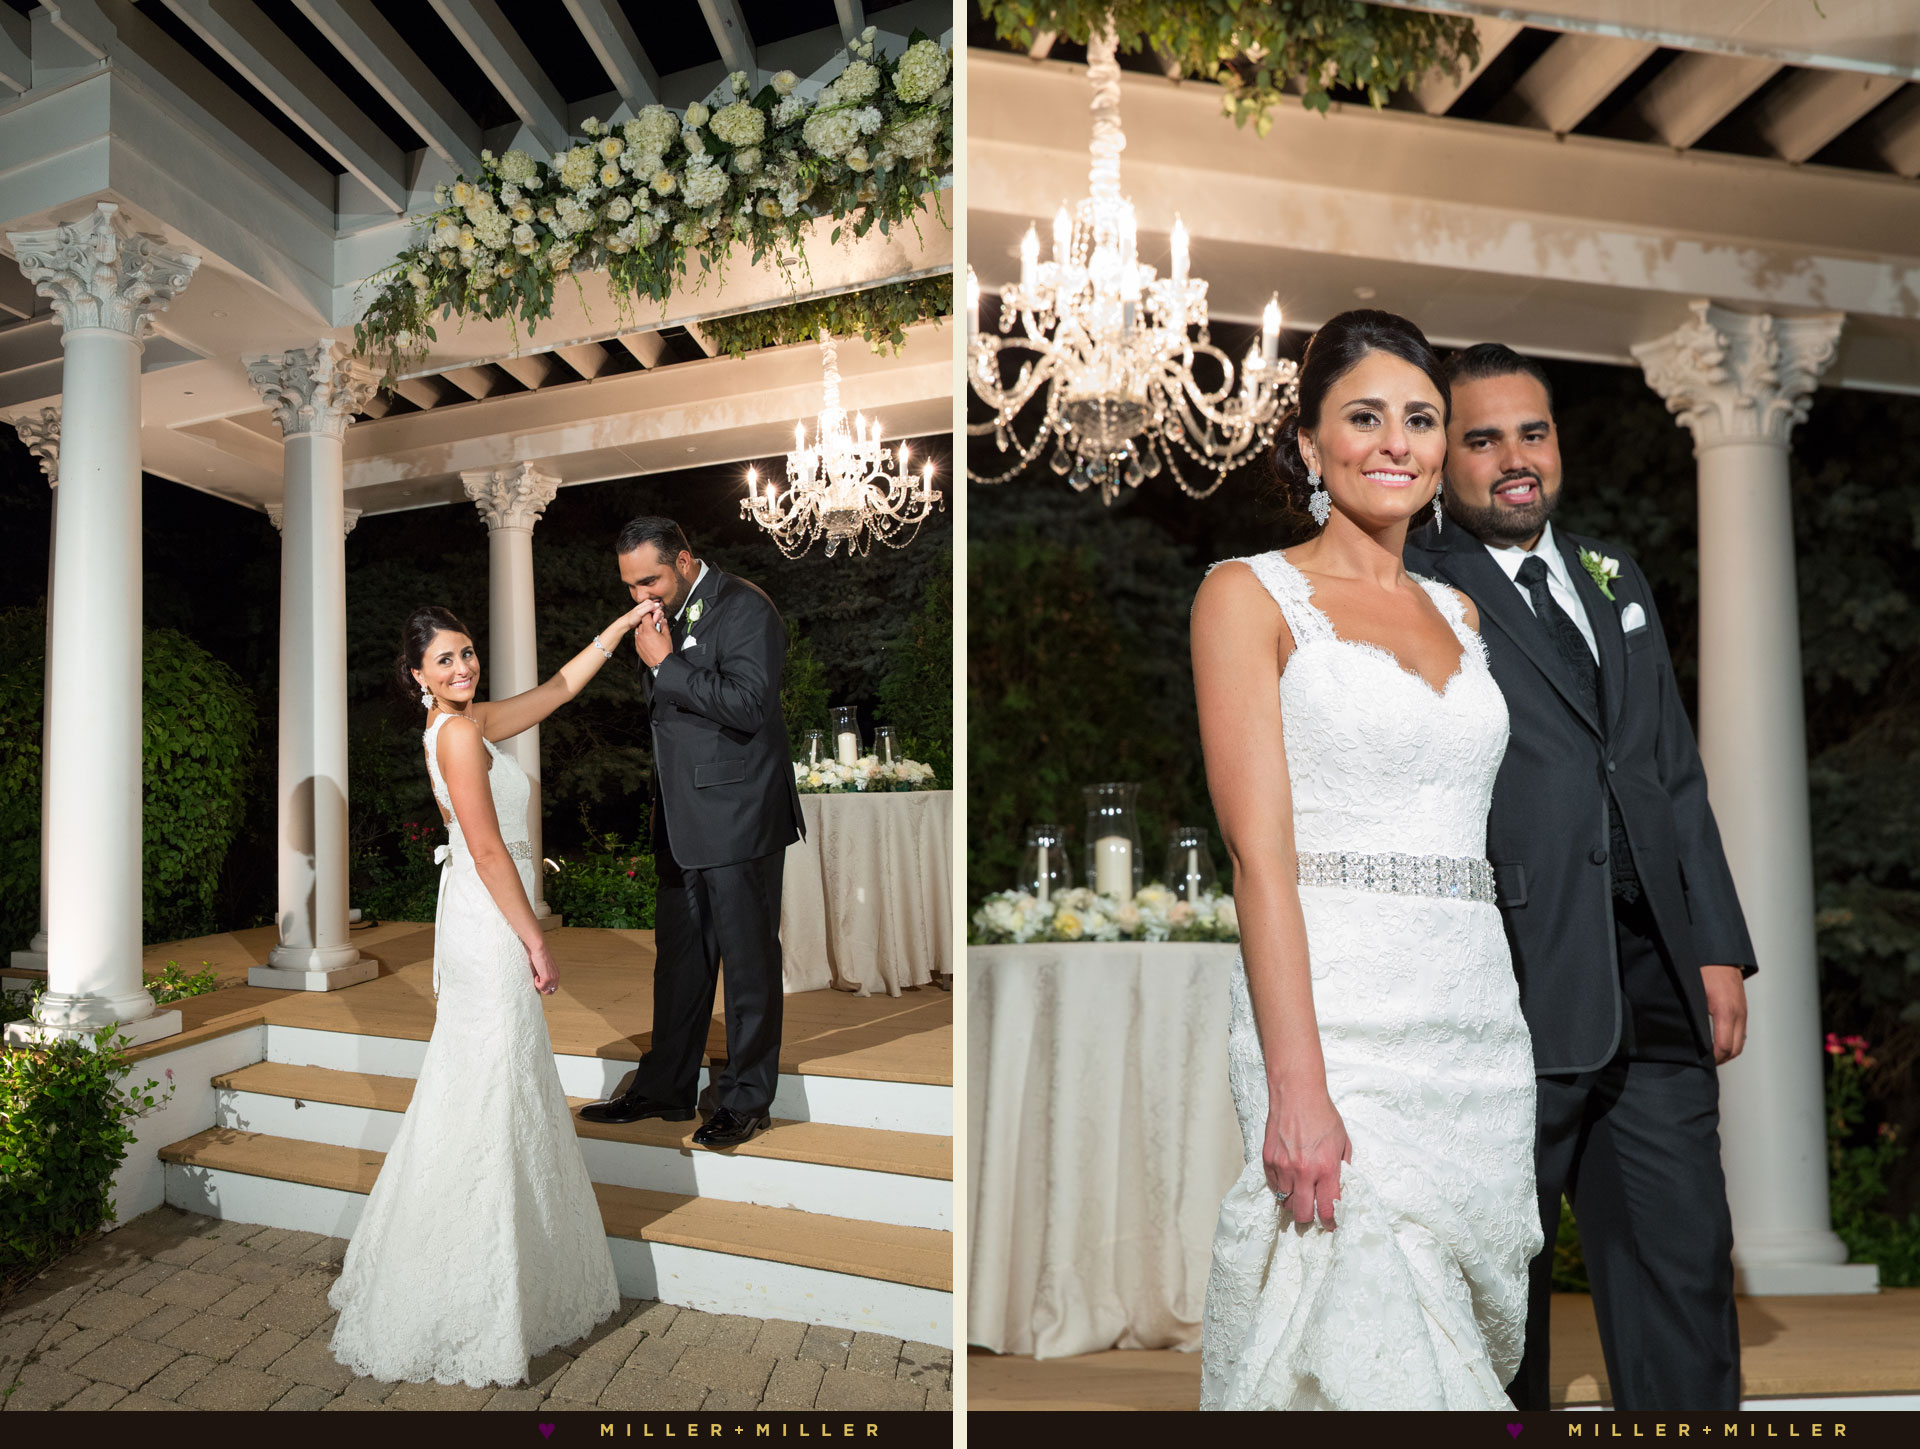 night wedding photos outdoors crystal chandelier pergola